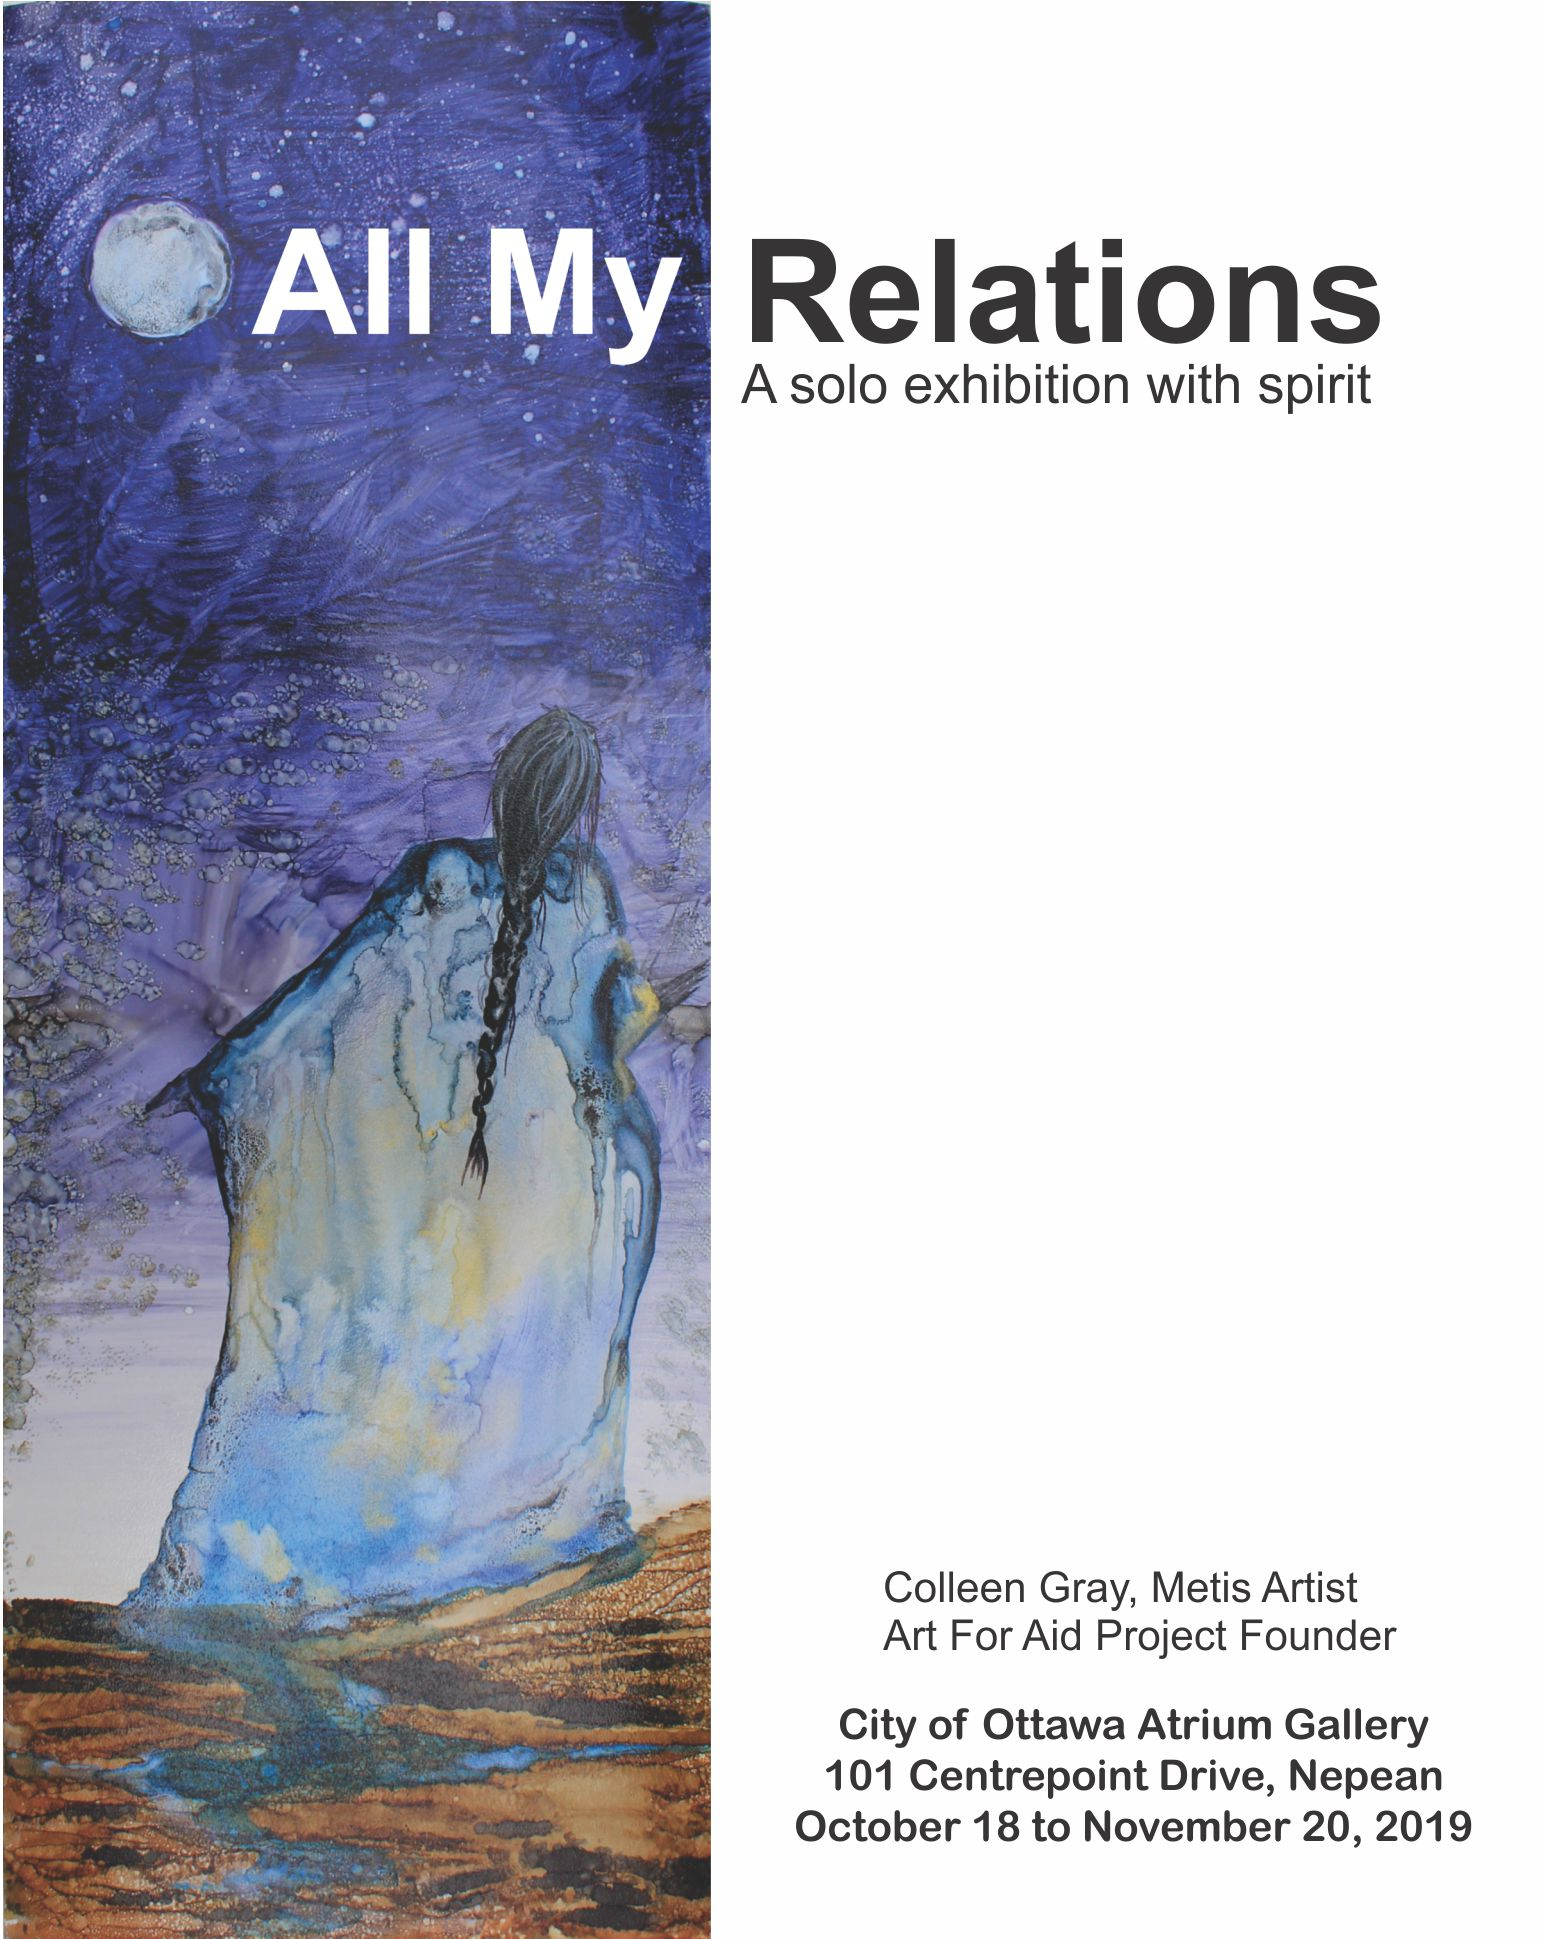 All My Relations - An Exhibition With Spirit